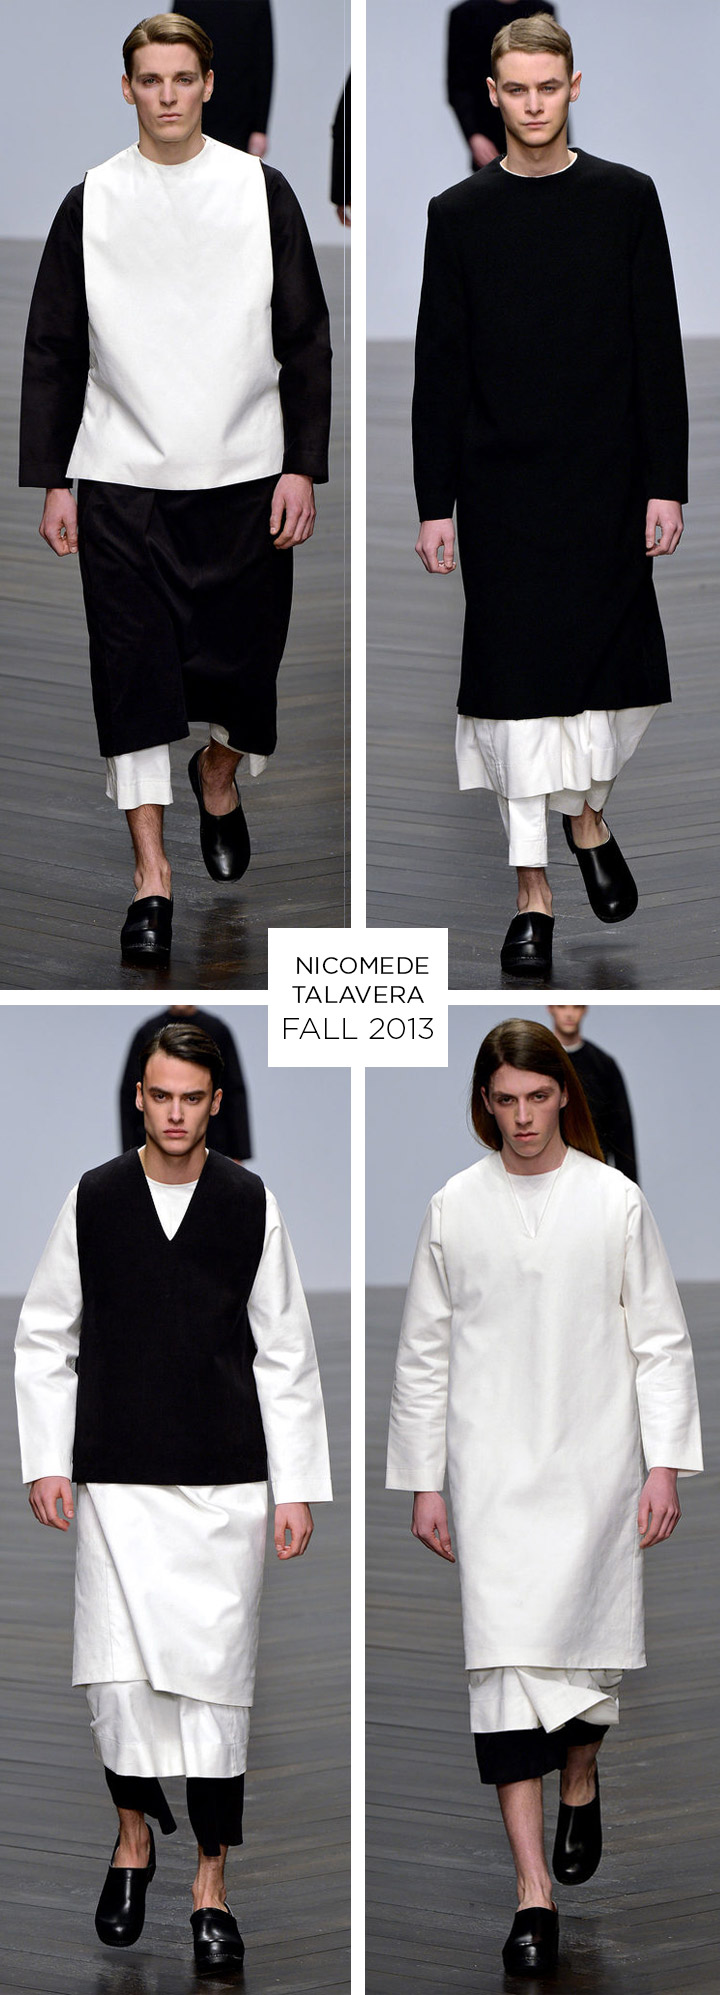 One to Watch: NICOMEDE TALAVERA FALL 2013 | DeSmitten